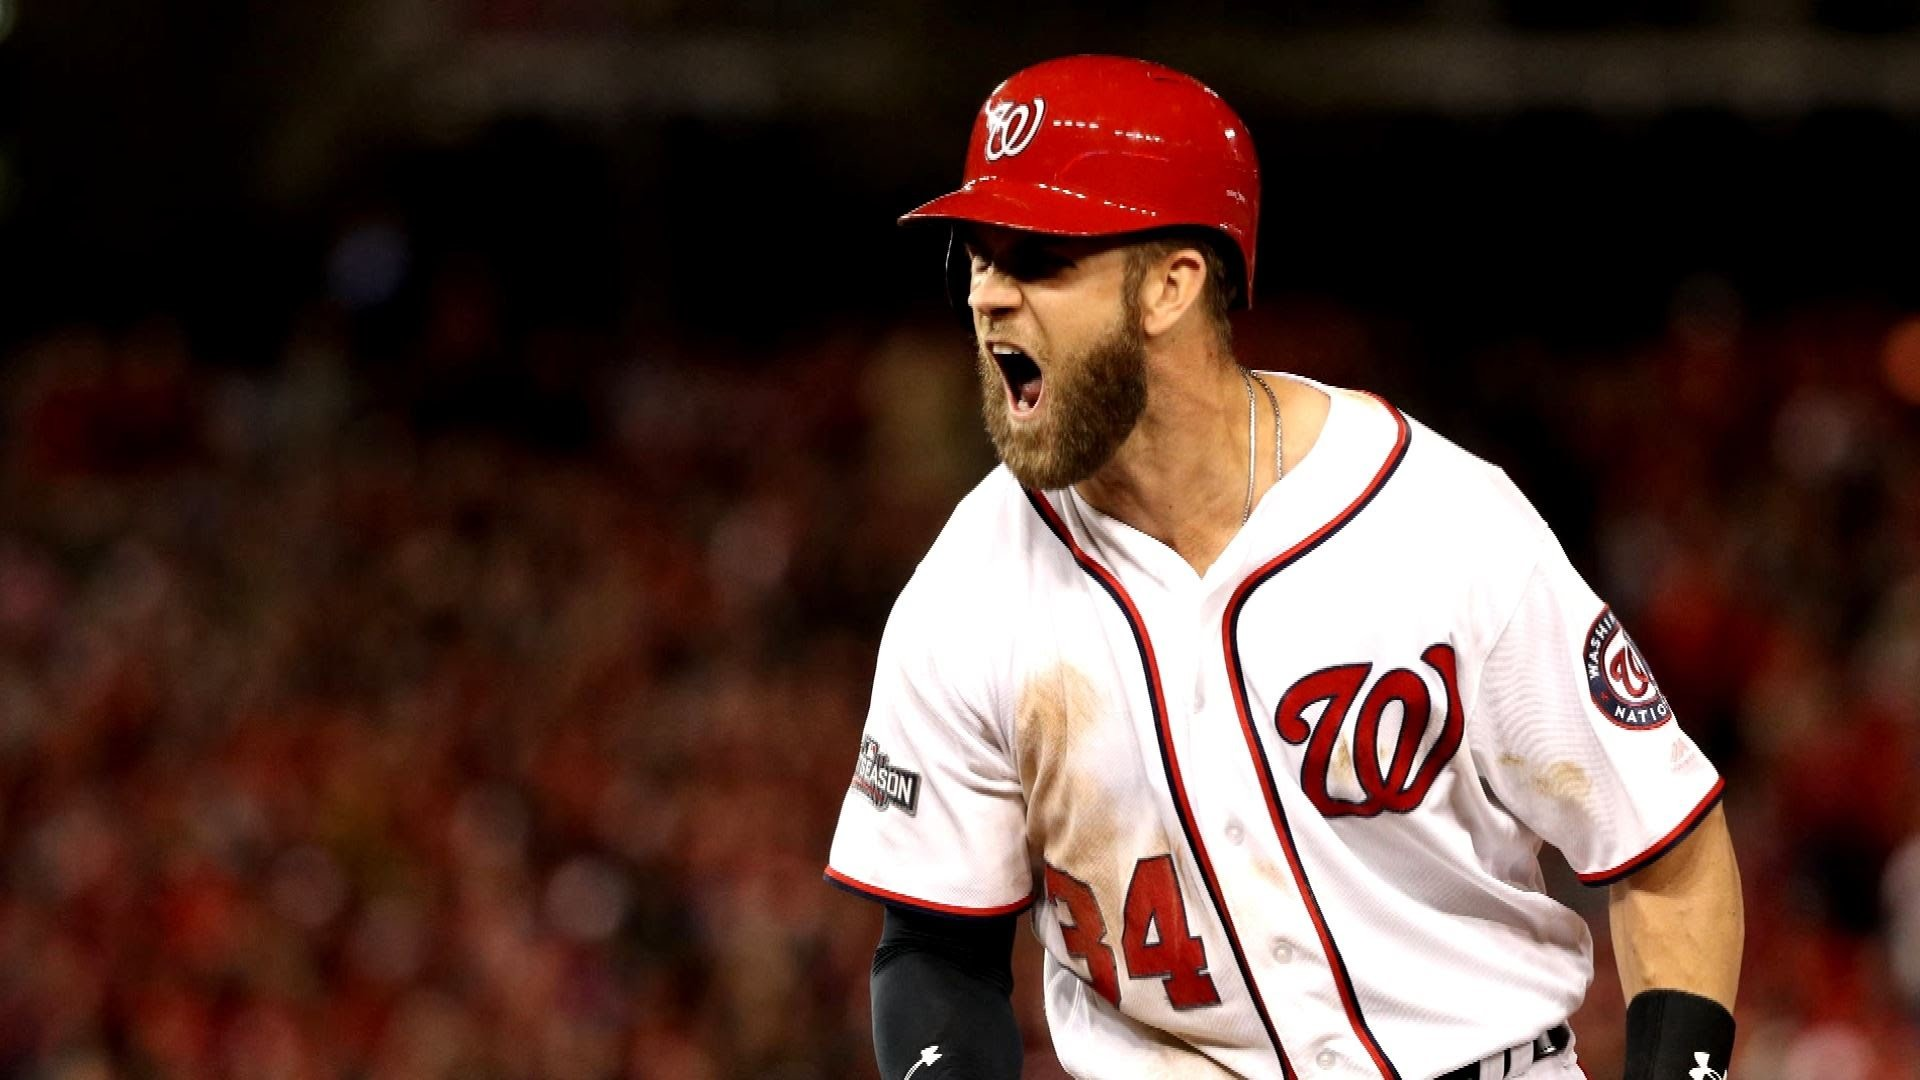 Is Bryce Harper worth his asking price?